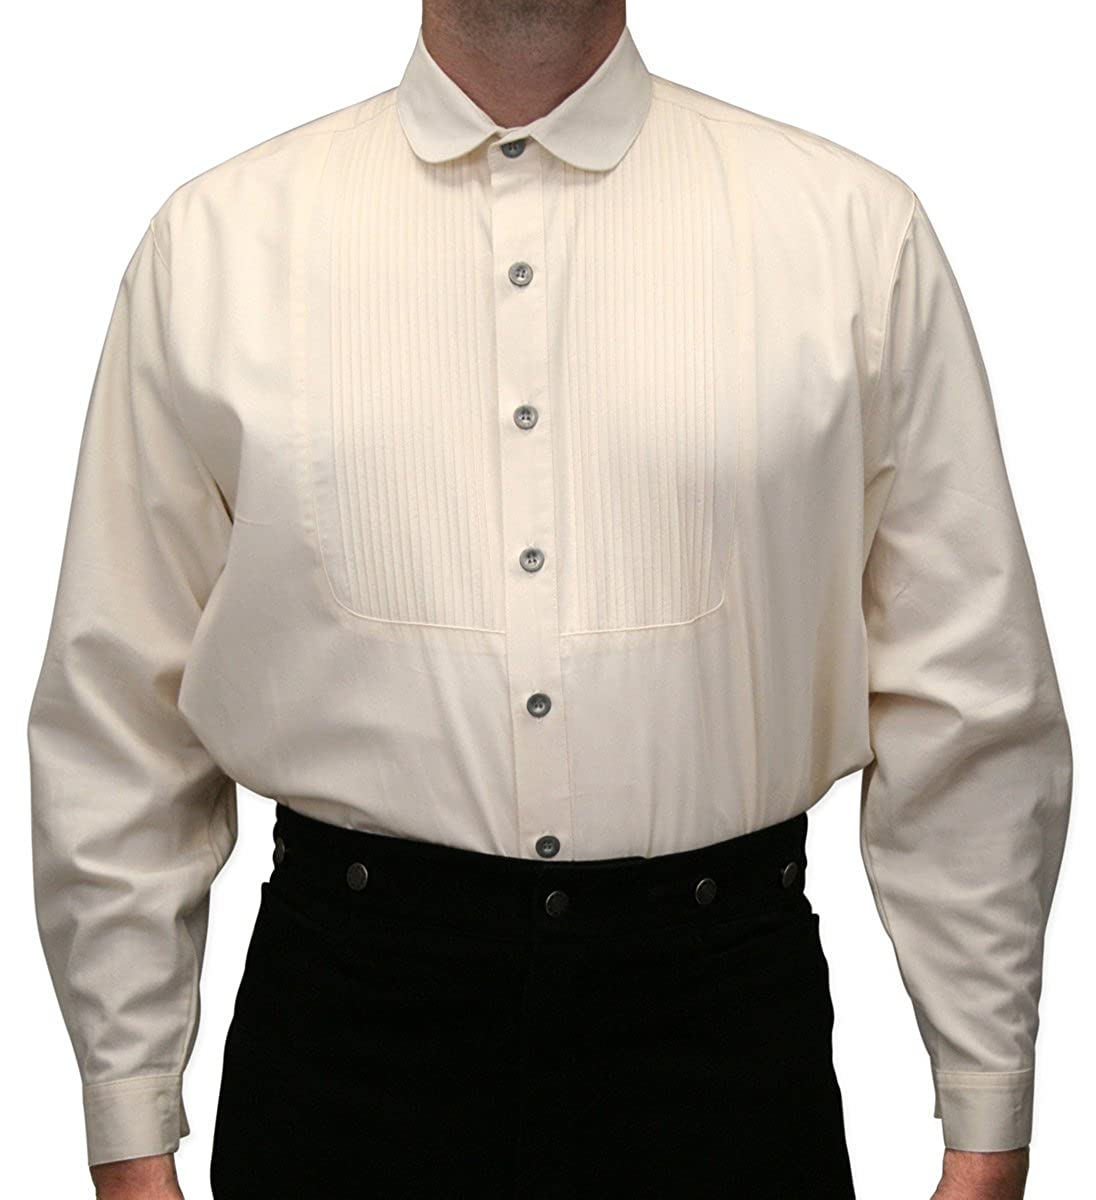 Victorian Men's Shirts- Wingtip, Gambler, Bib, Collarless Historical Emporium Mens Pleated Edwardian Round Club Collar Dress Shirt $59.95 AT vintagedancer.com